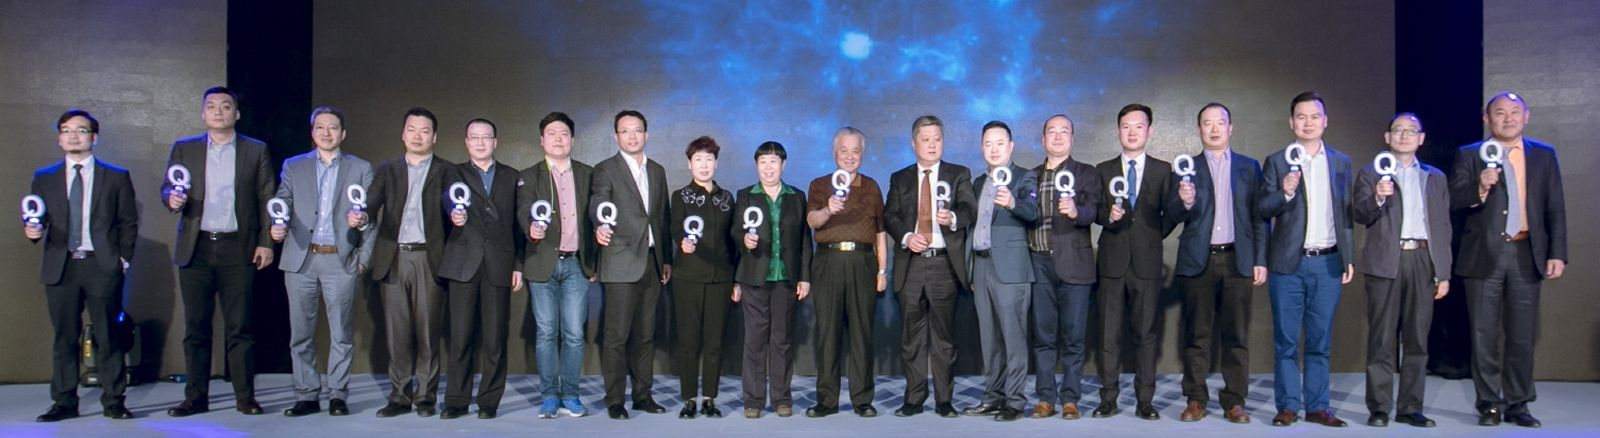 QLED International Forum. Liu Jufeng and other representatives of the industry (family photo). © Samsung.